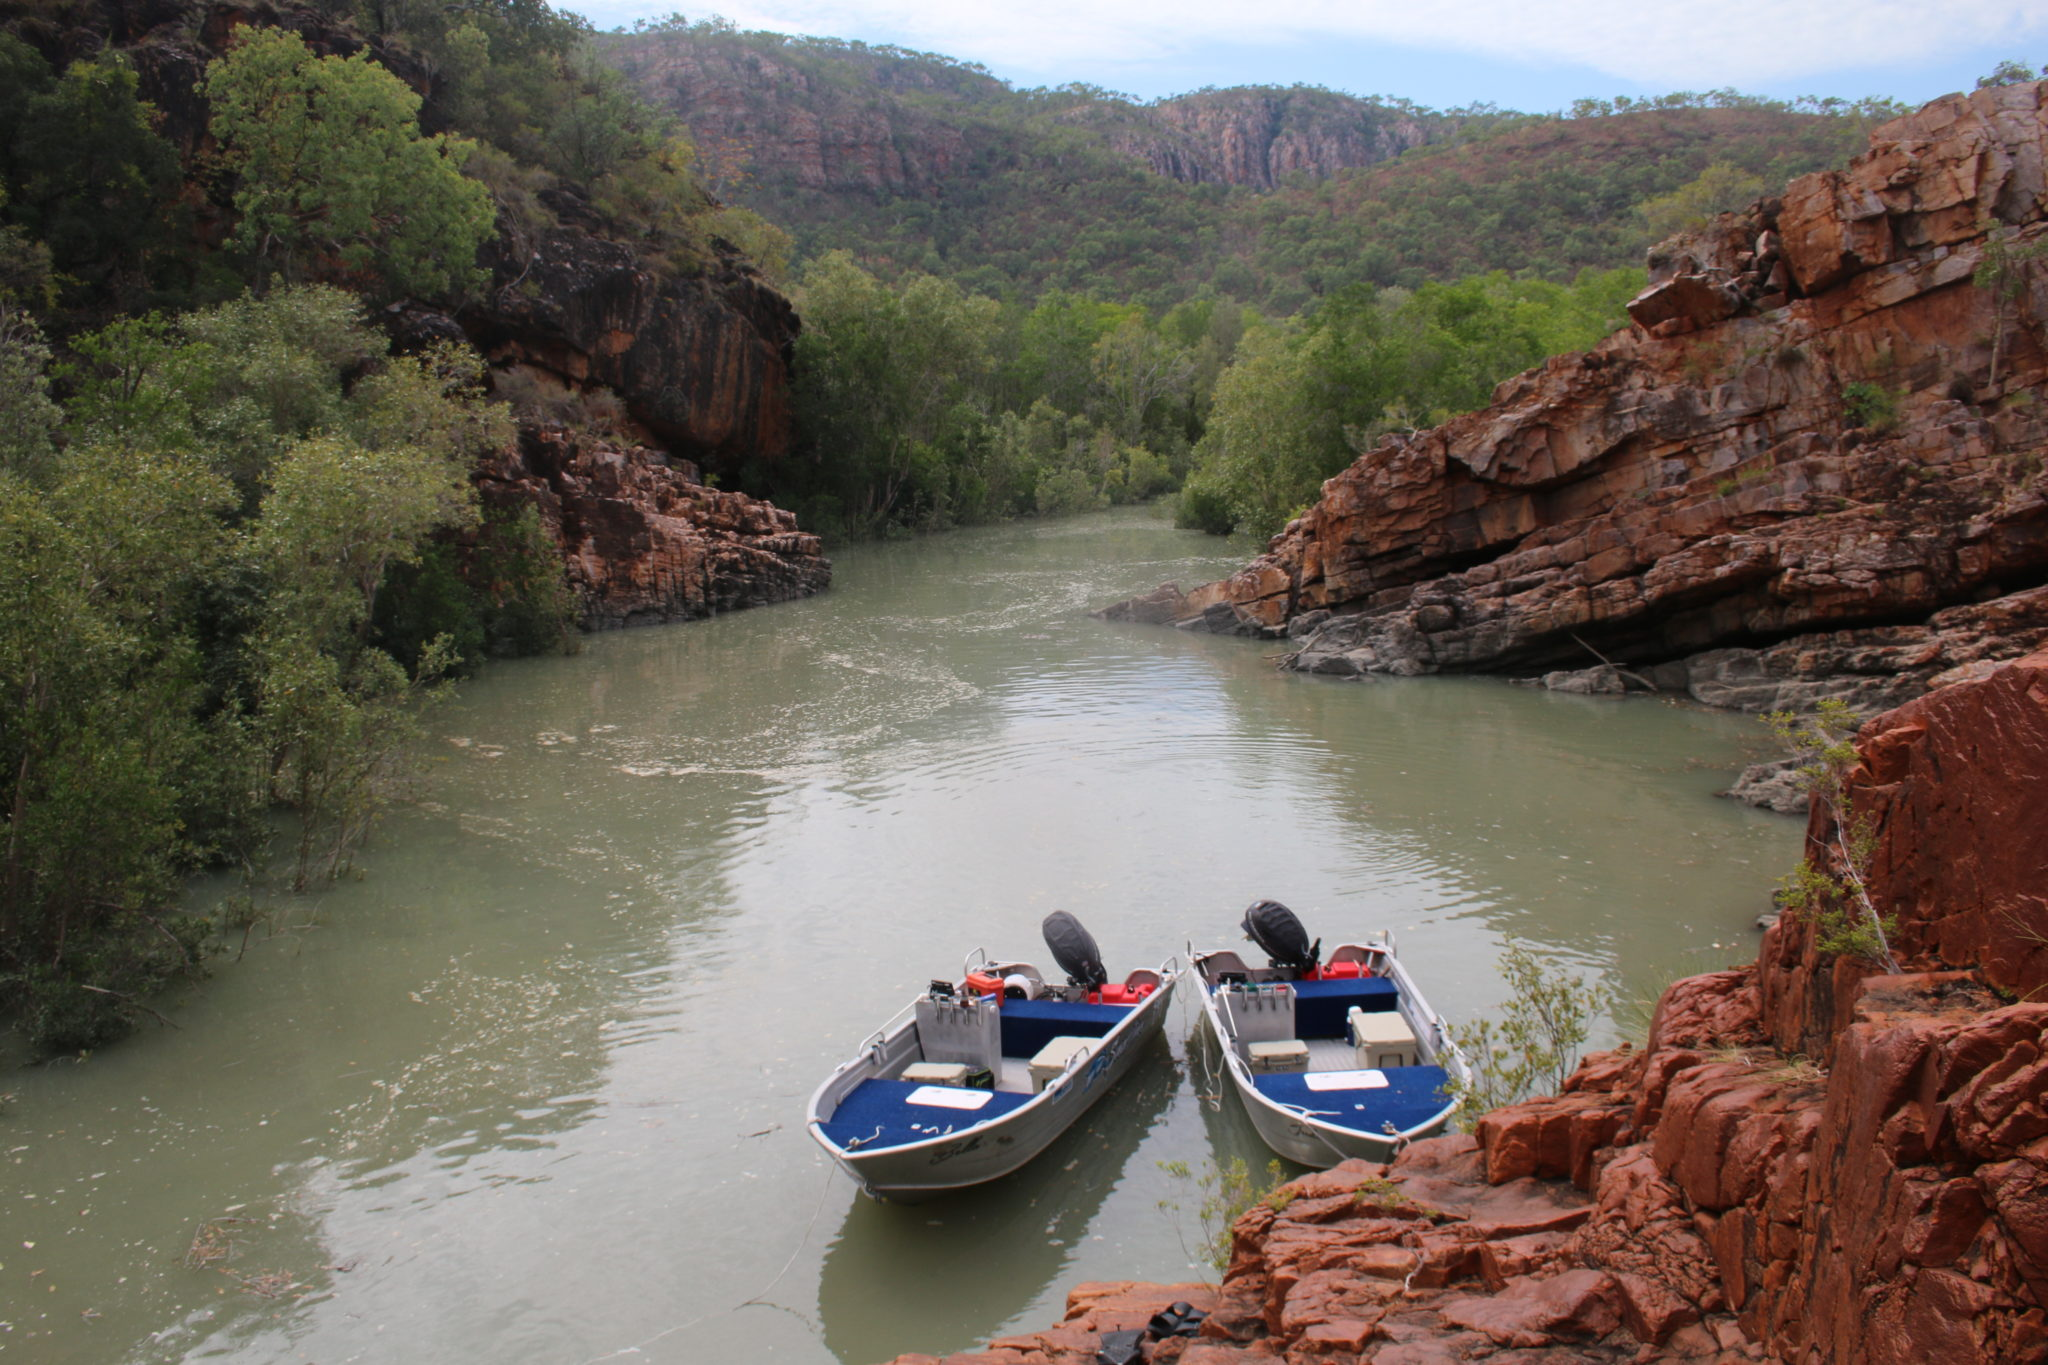 Tenders for daily excursions in the remote Kimberley